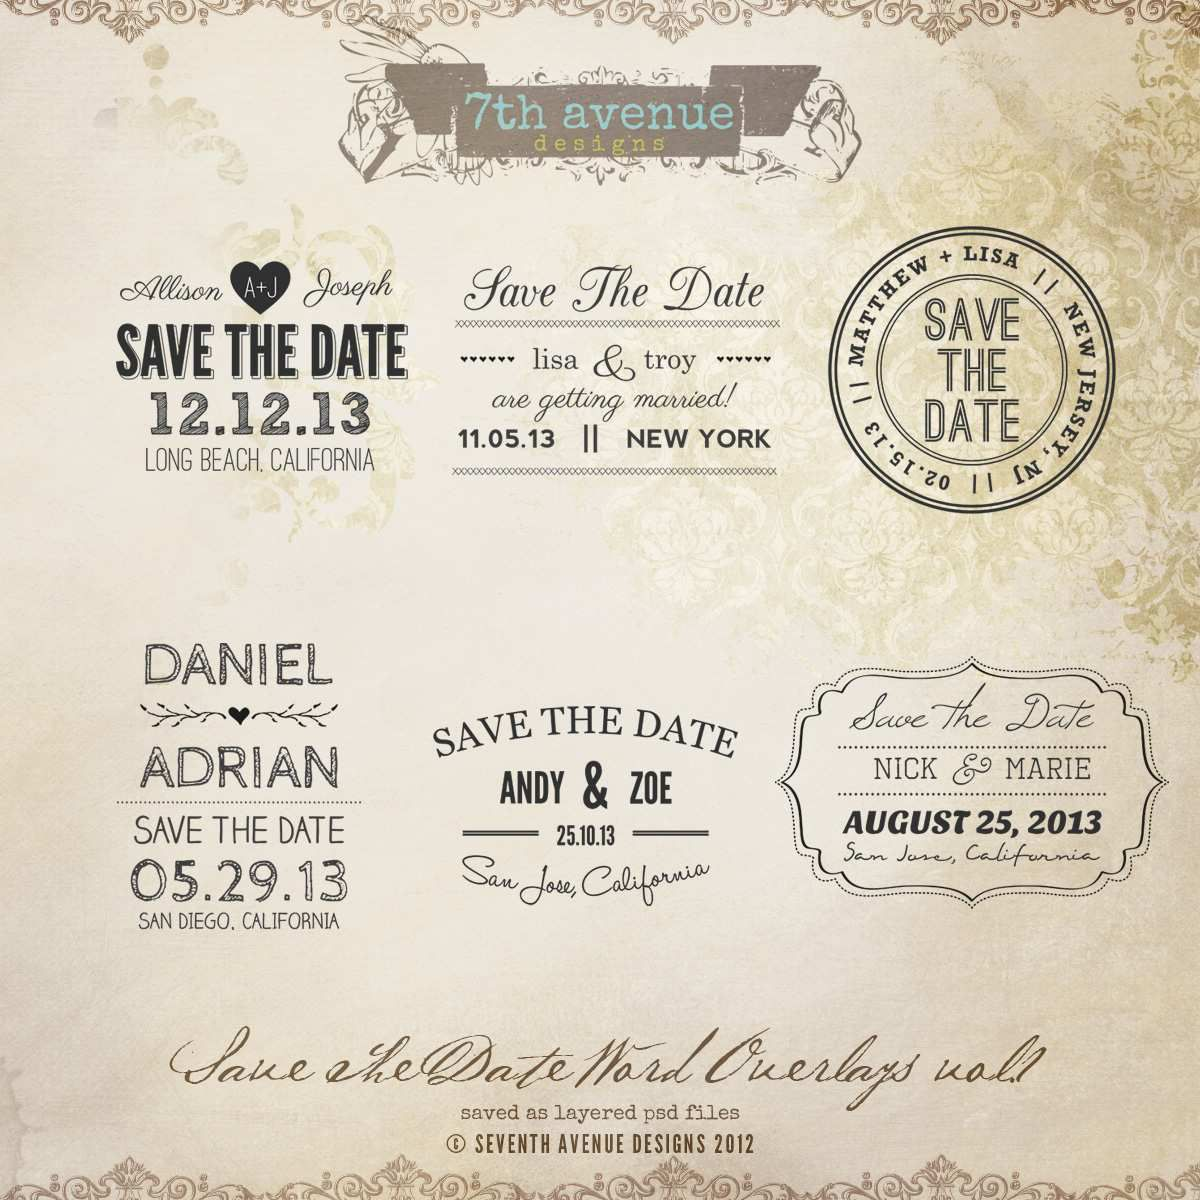 001 Astounding Save The Date Word Template High Definition  Free Birthday For Microsoft Postcard FlyerFull